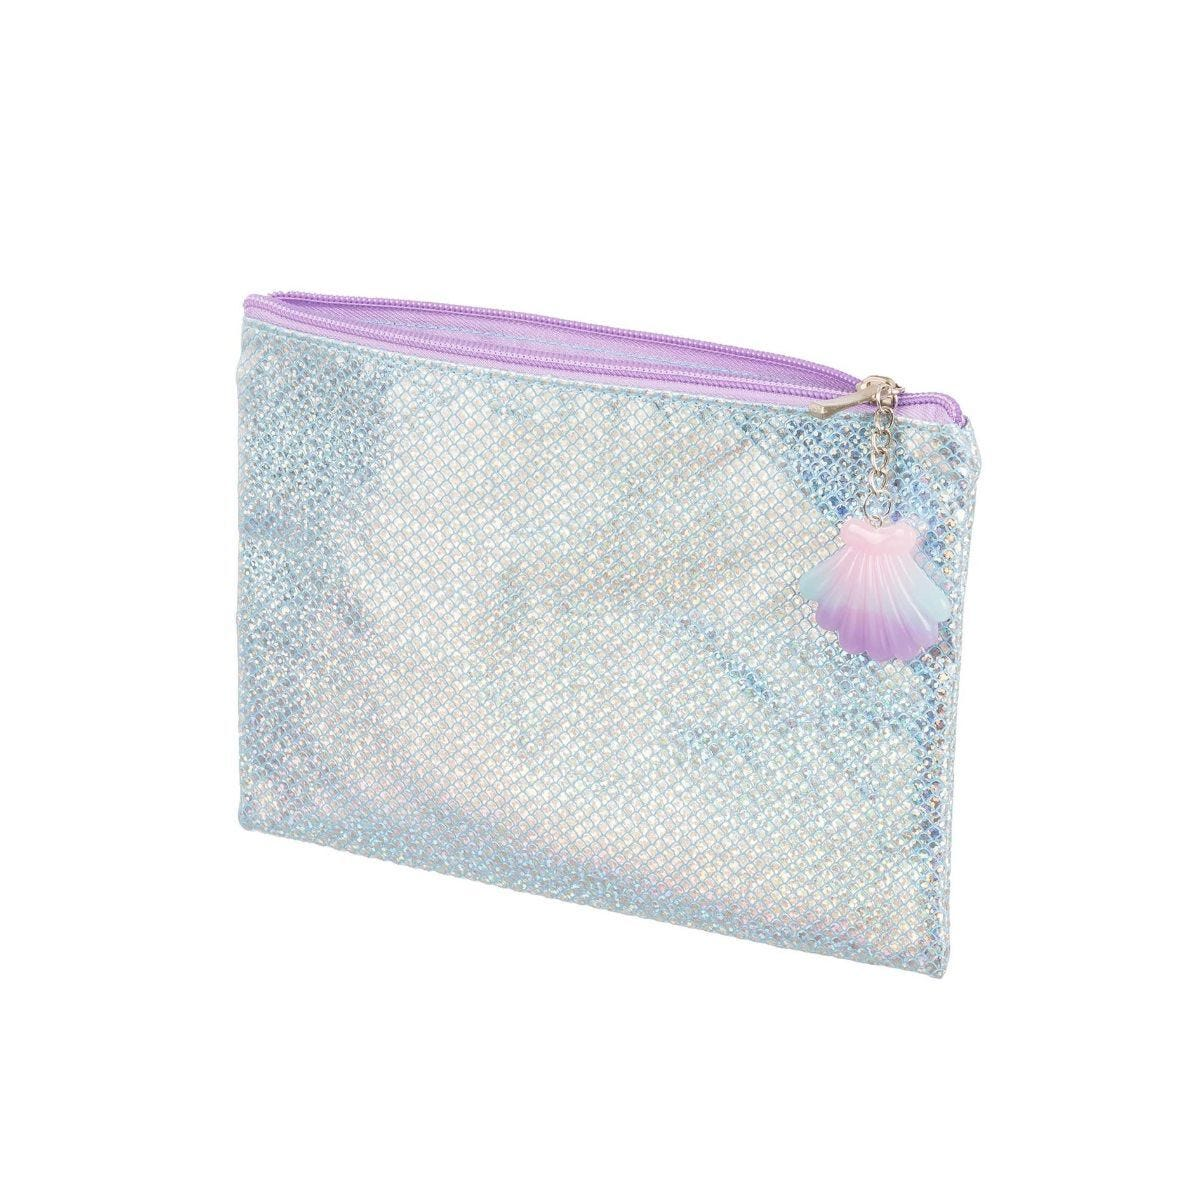 Mermaid Holographic Flat Pencil Case